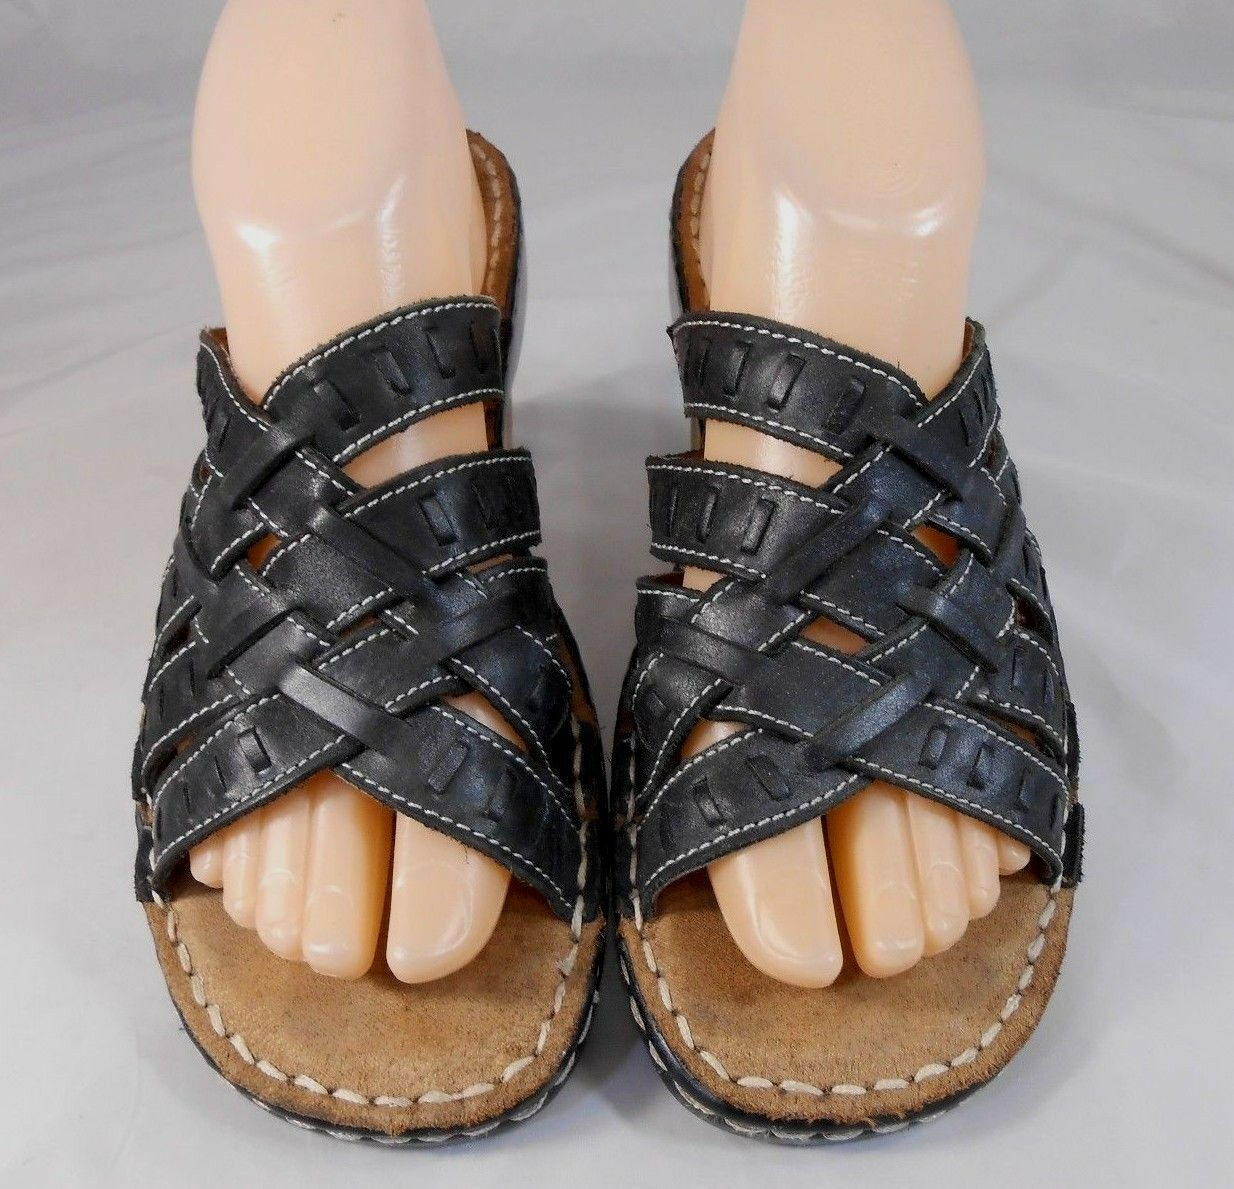 Naturalizer CLOVE Womens Strappy Sandals Size On 8 M Leather Slip On Size Black Beige 90087e